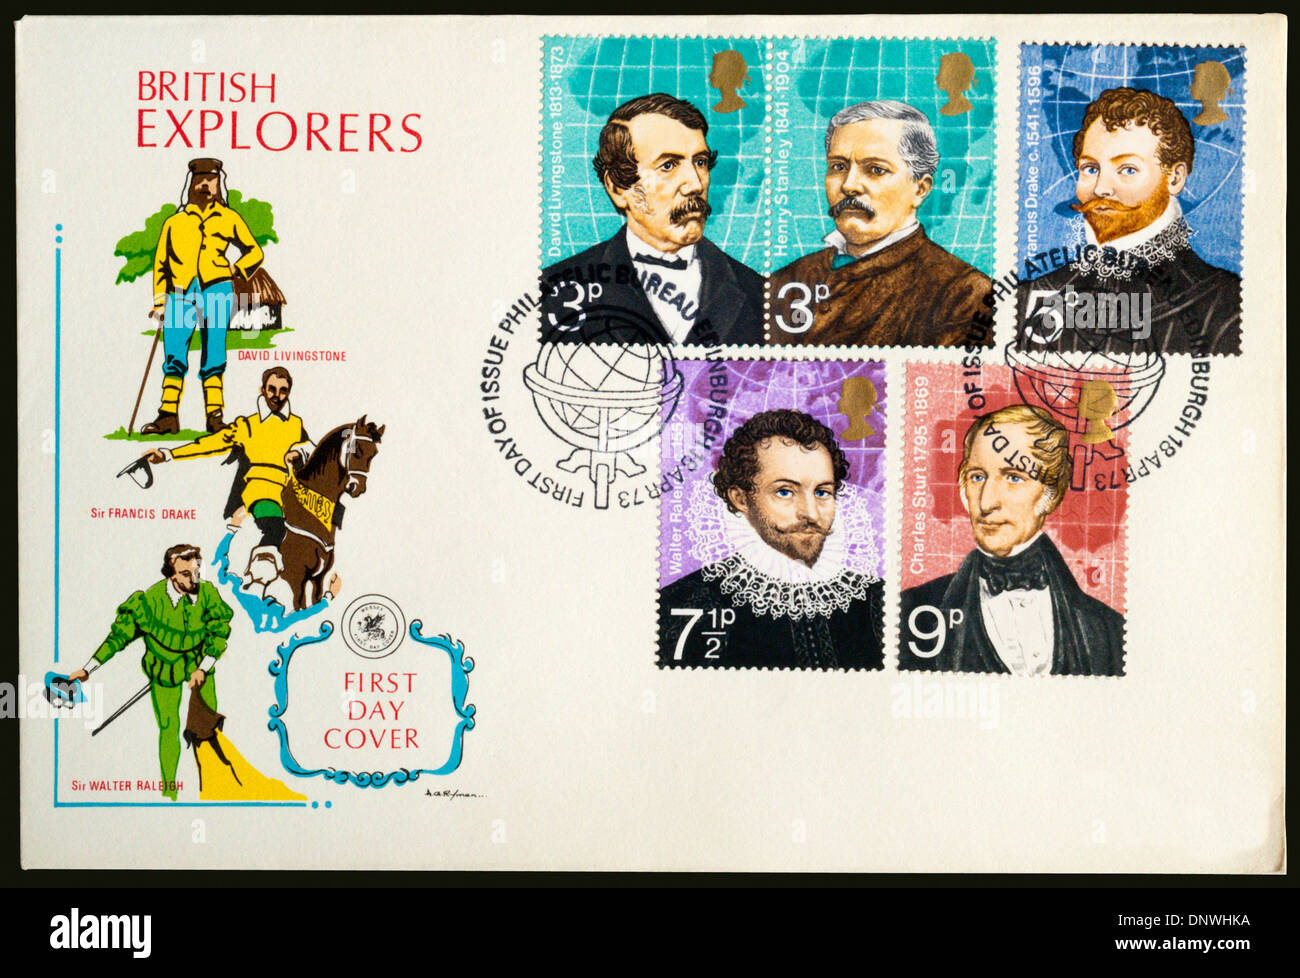 1973 First Day Cover commemorating British Explorers. - Stock Image